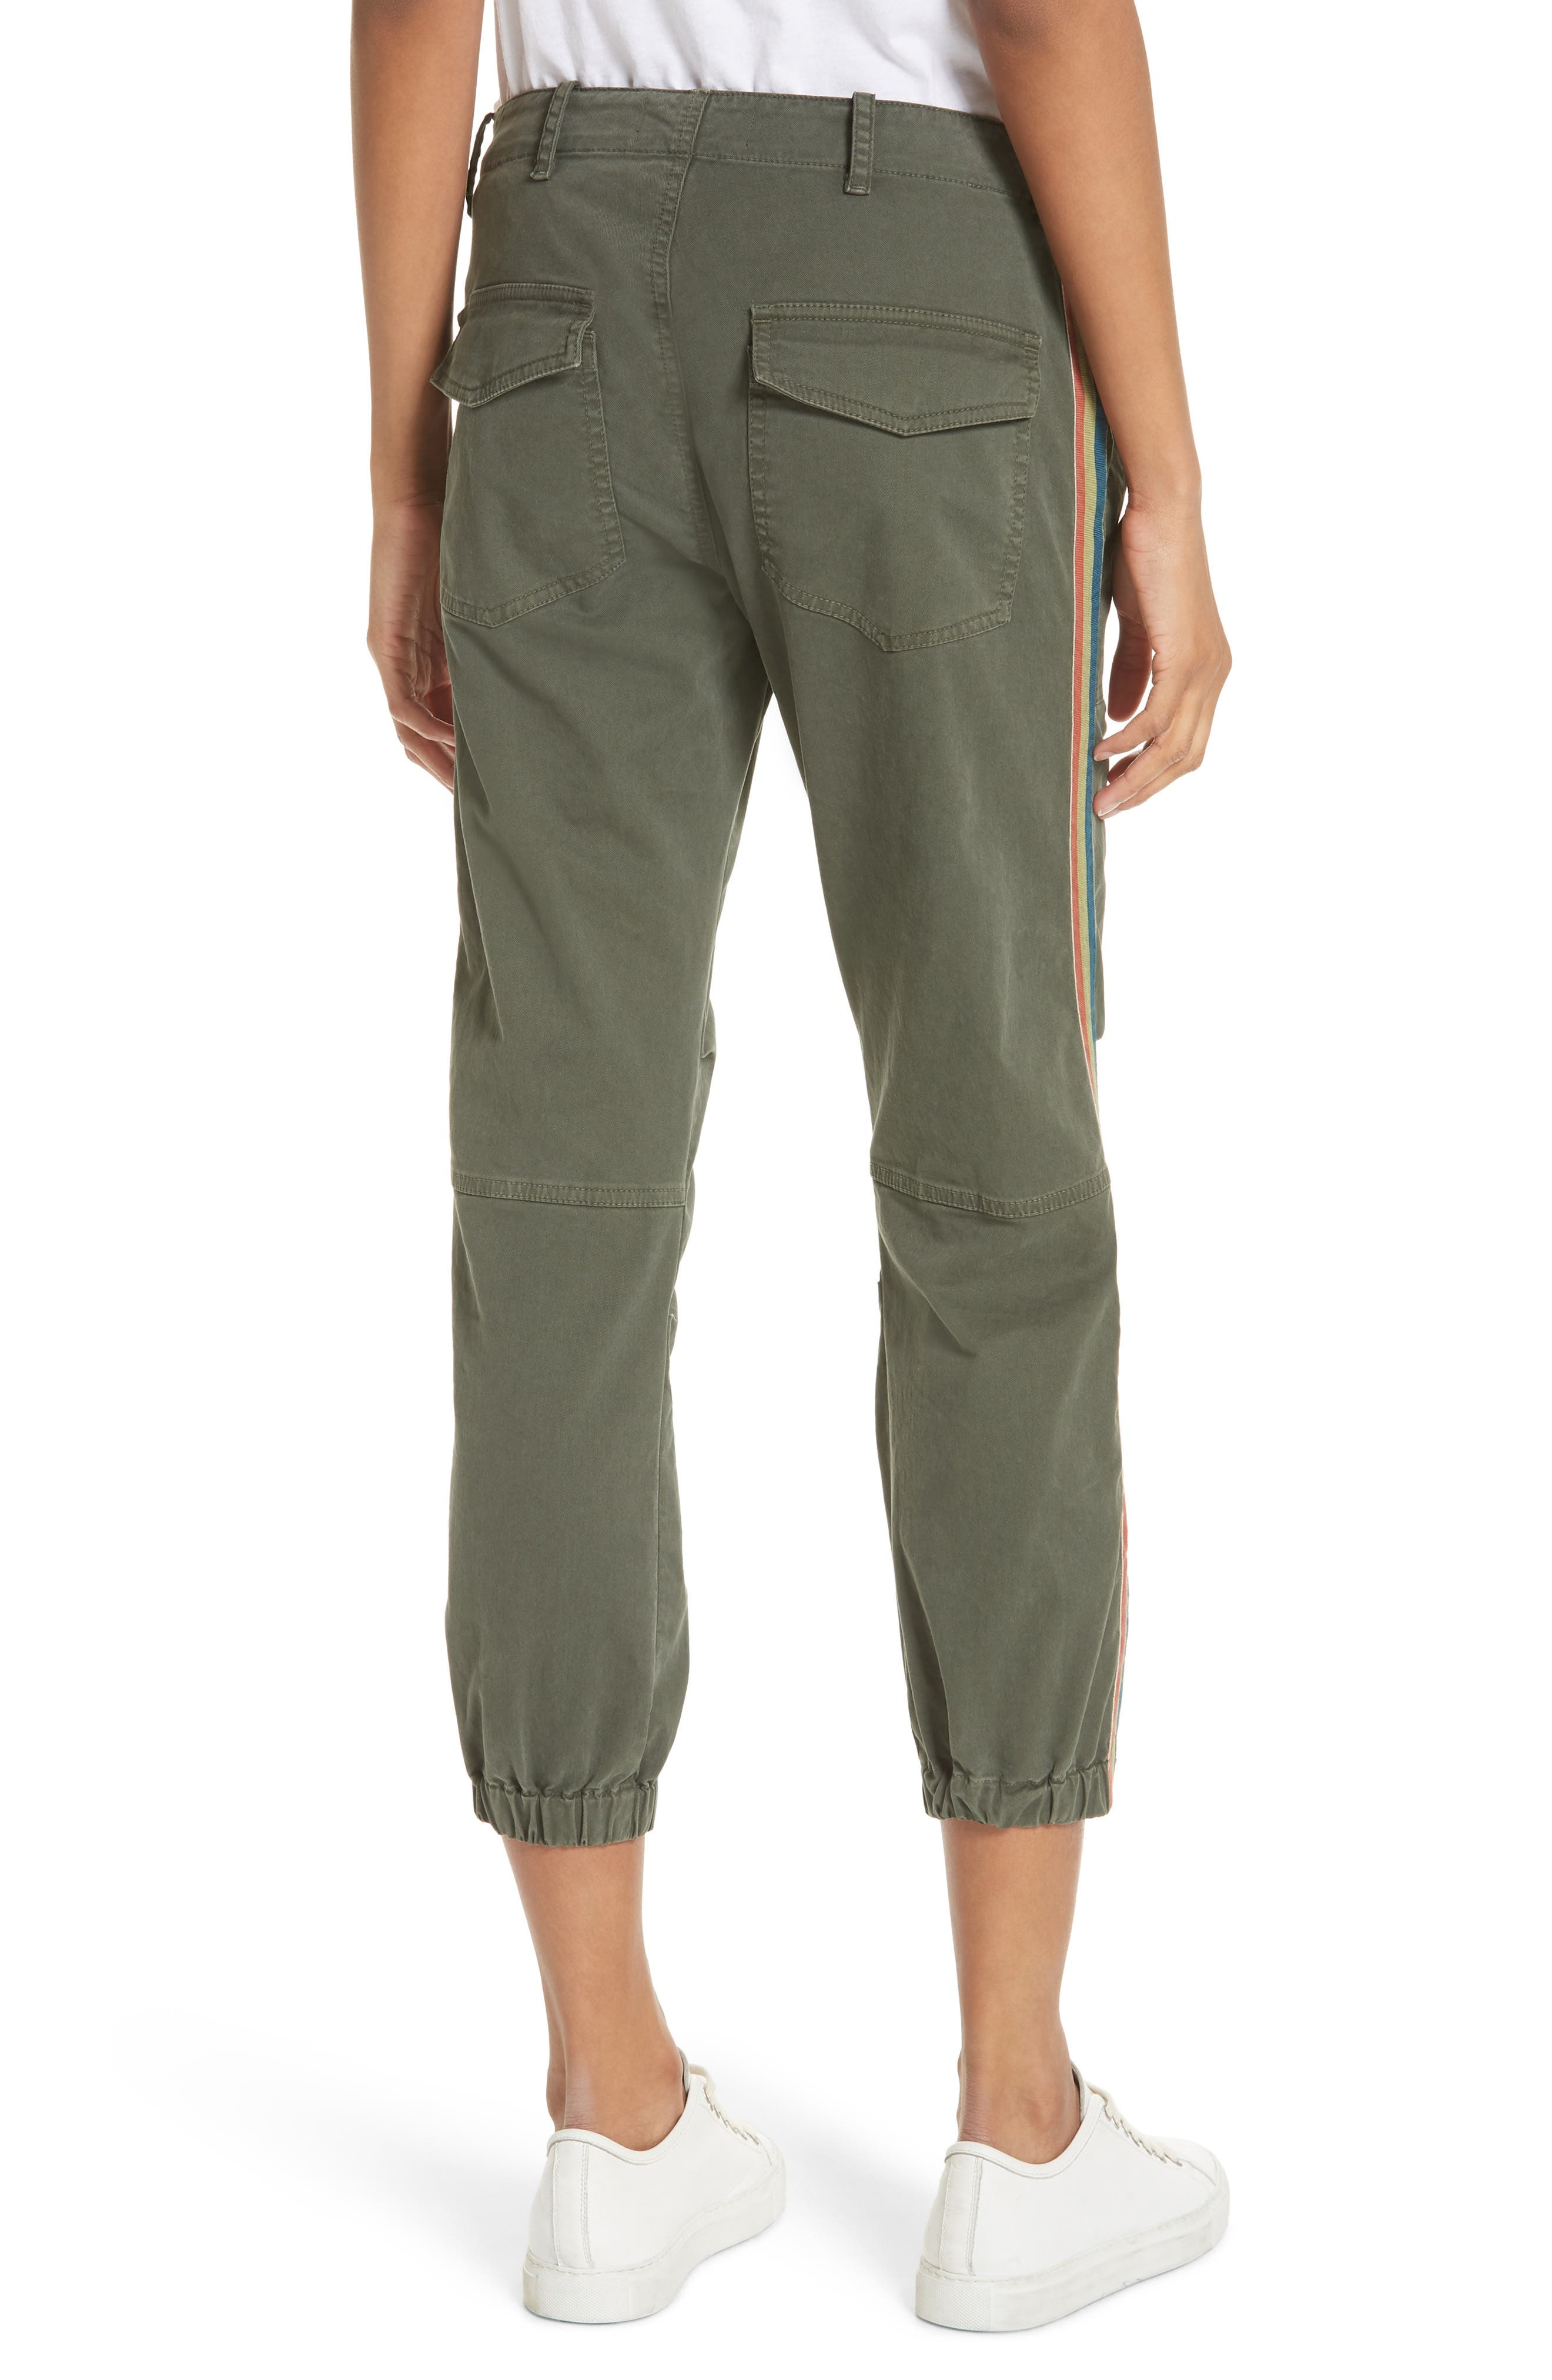 French Crop Military Pants,                             Alternate thumbnail 2, color,                             Loden